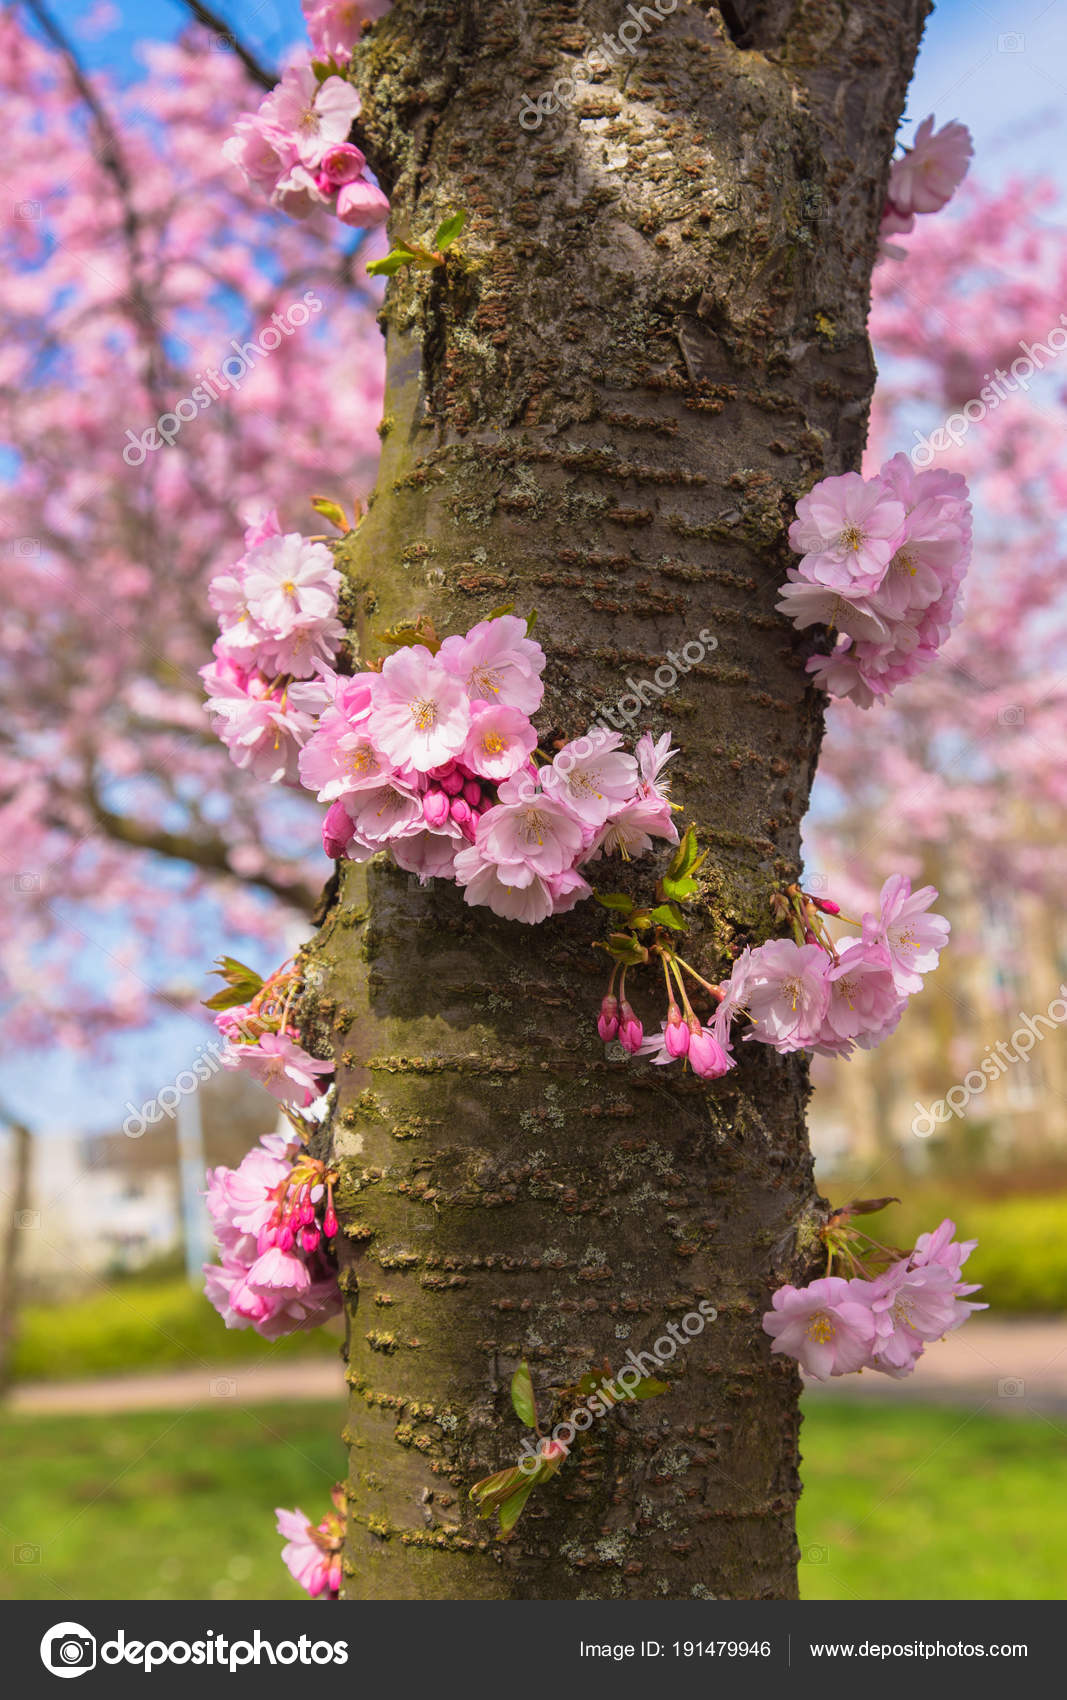 Blooming cherry tree trunk symbol of spring stock photo blooming cherry tree trunk beautiful spring pink sakura cherry flowers floral spring background many pink flowers on the trunk mightylinksfo